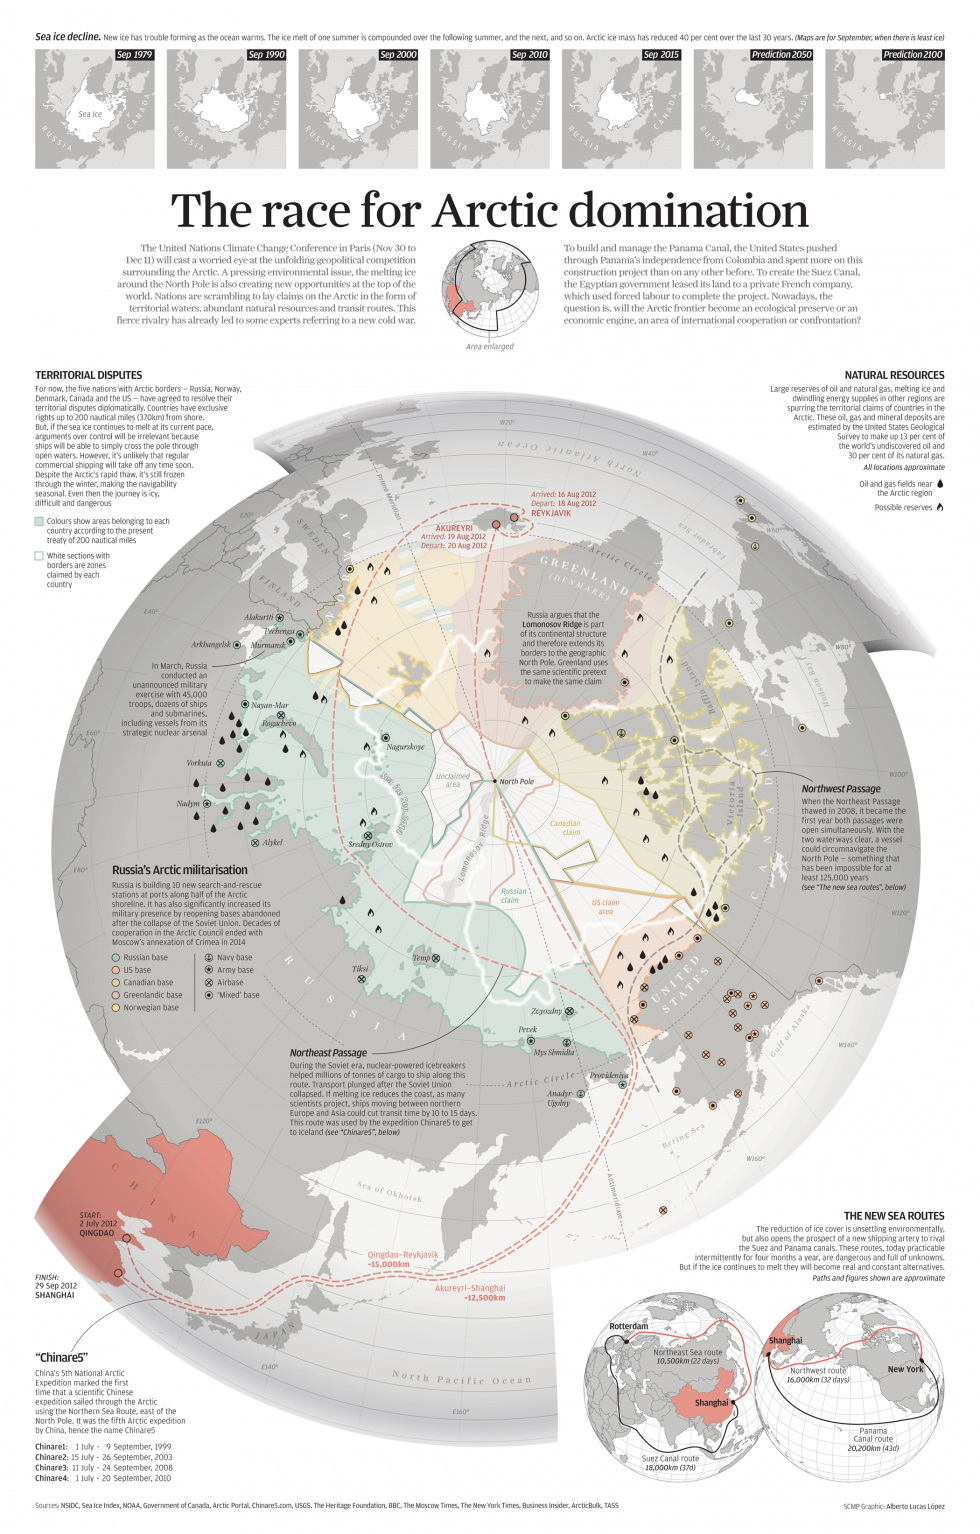 The race for Arctic domination